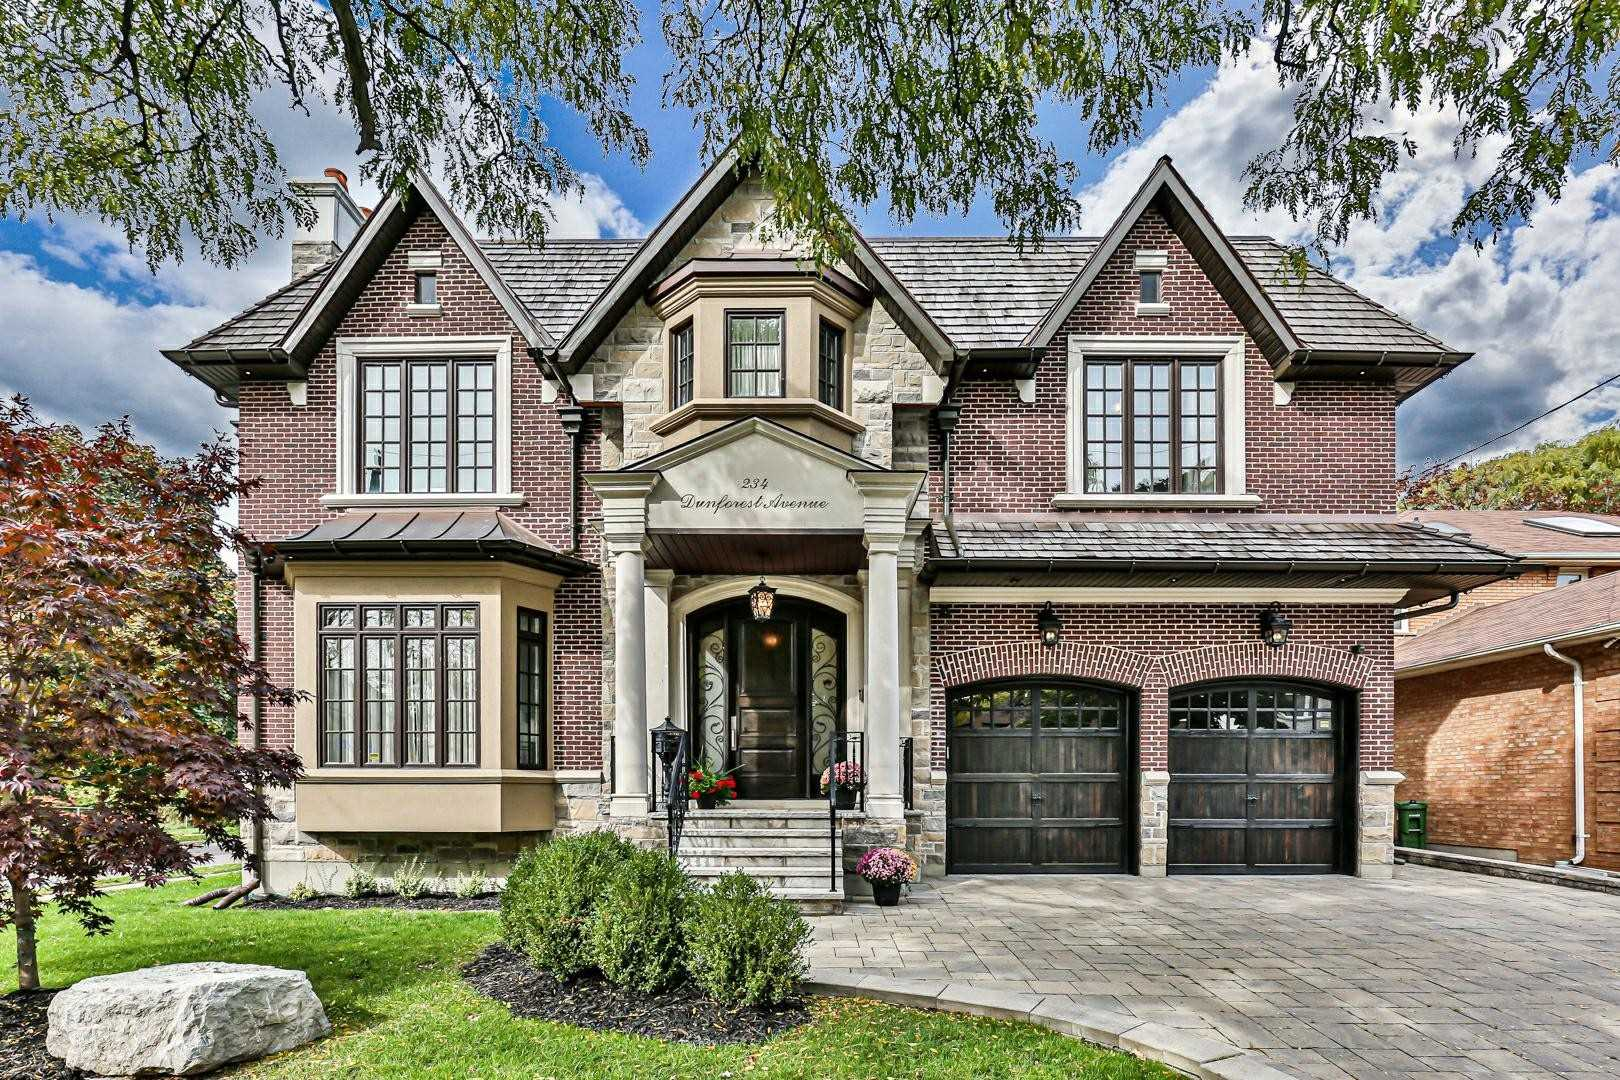 234 Dunforest Ave, Toronto, Ontario M2N4J9, 5 Bedrooms Bedrooms, 12 Rooms Rooms,7 BathroomsBathrooms,Detached,For Sale,Dunforest,C4954686